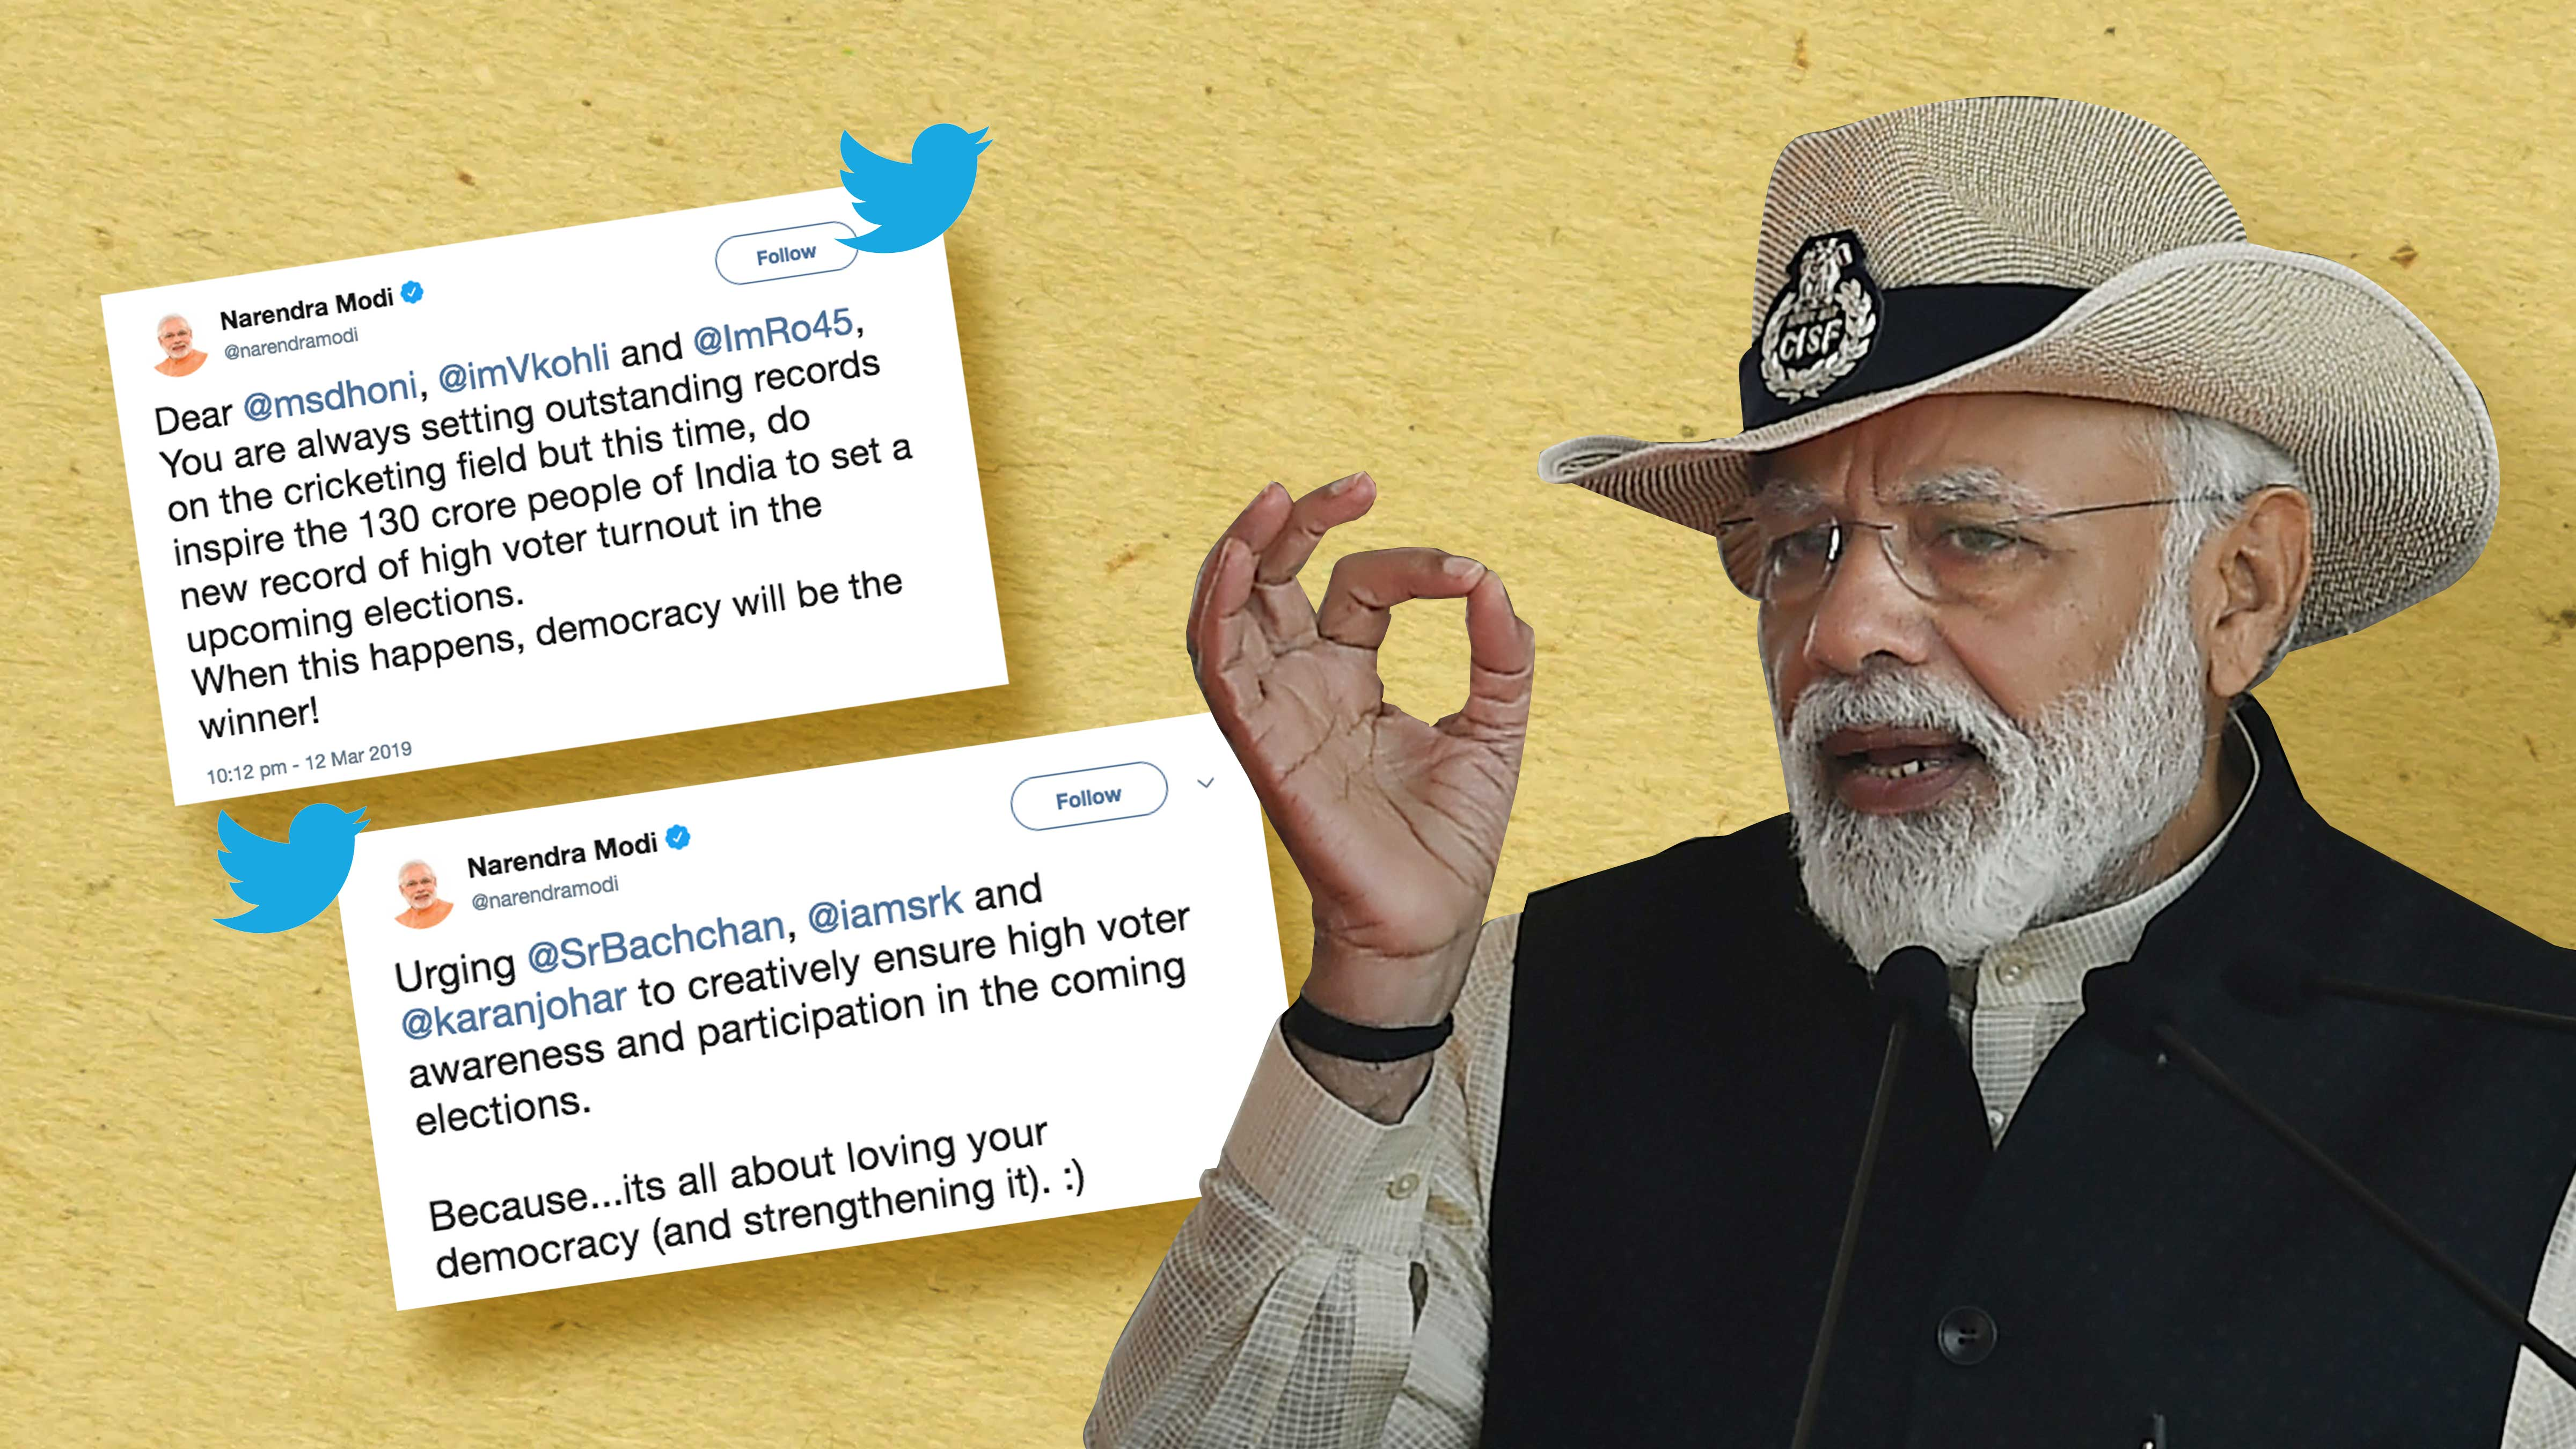 In a series of tweets and a blog post, Narendra Modi has asked